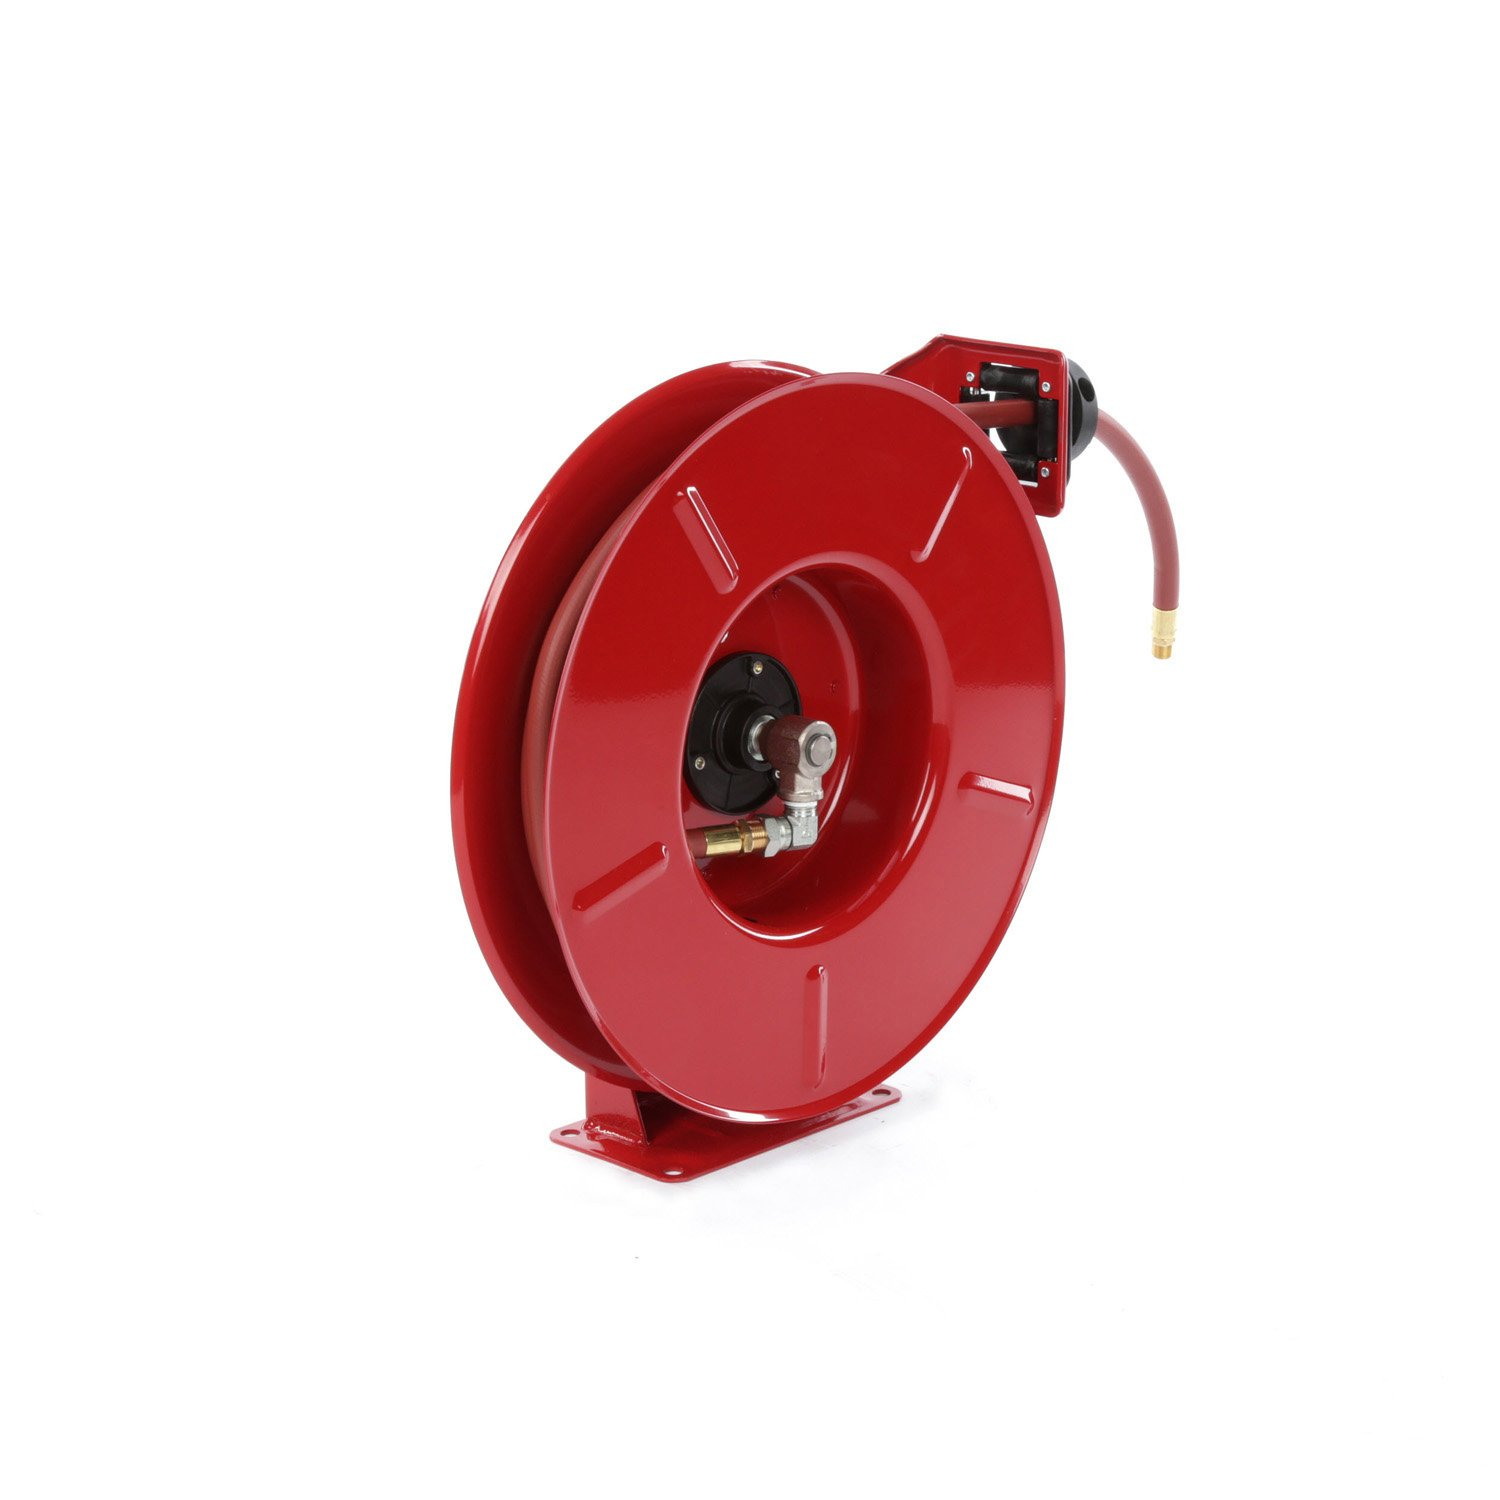 Heavy Duty Spring Rewind Hose Reel, 3/8'' x 70' 300 PSI by Reelcraft (Image #3)